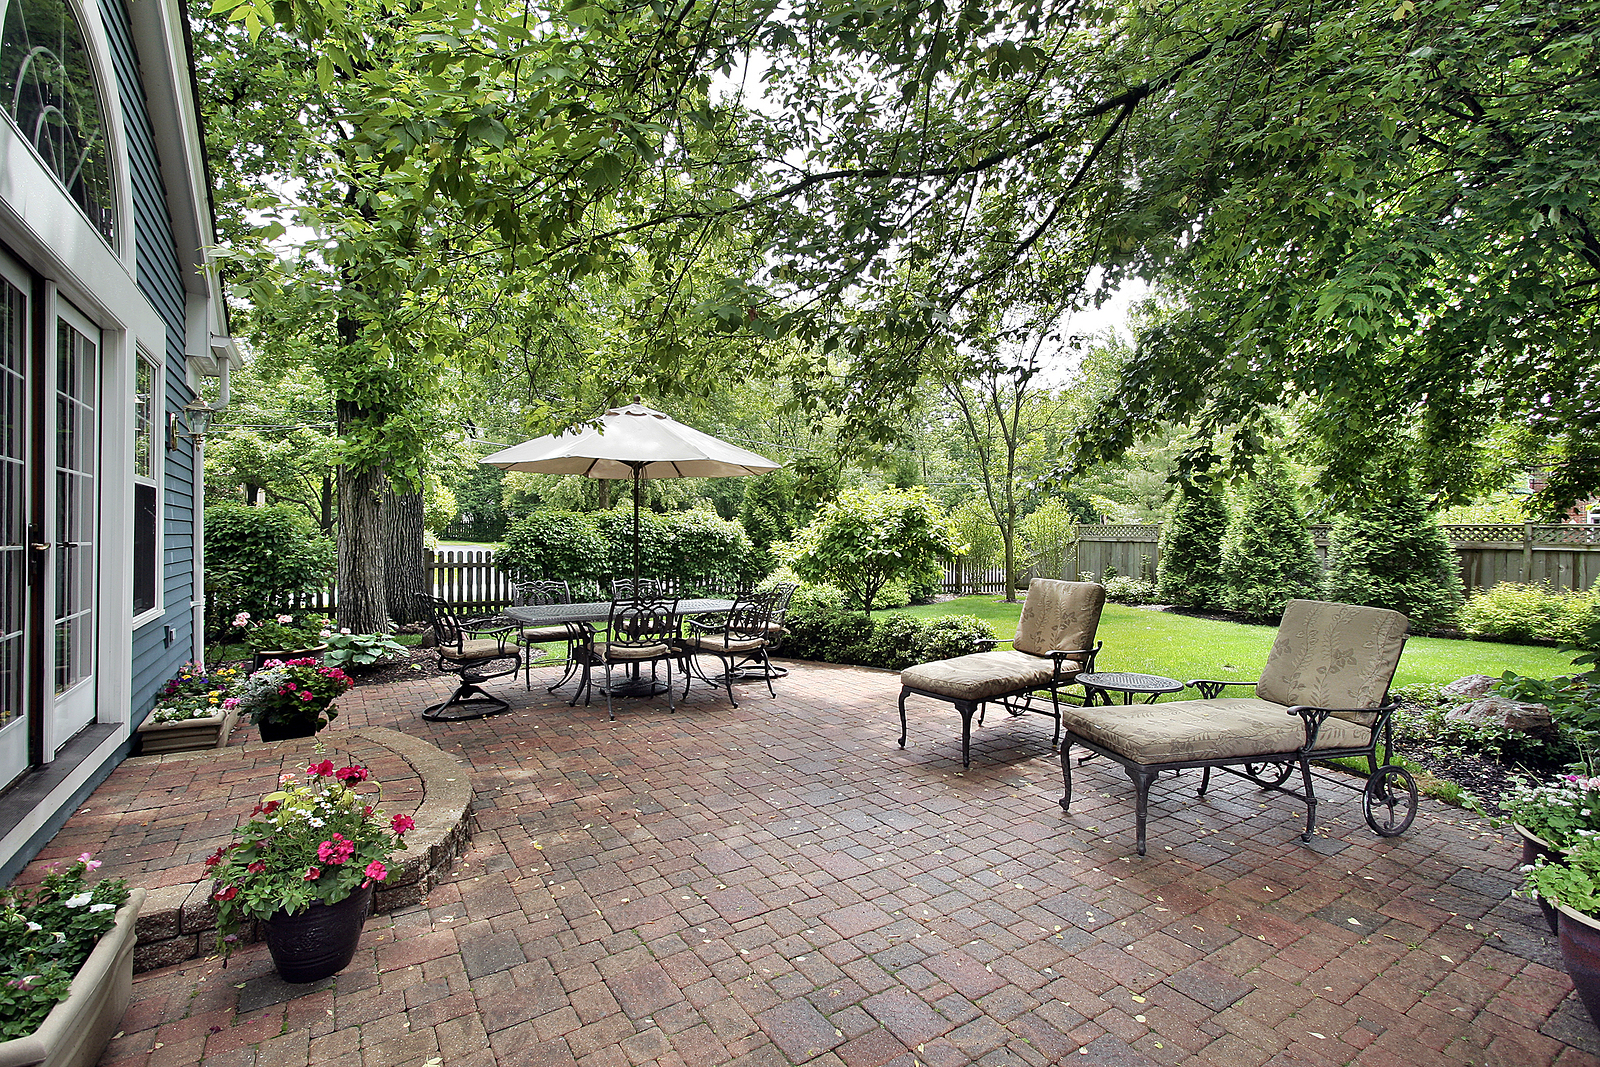 Summer Projects for Creating the Ultimate Backyard: Adding Shade